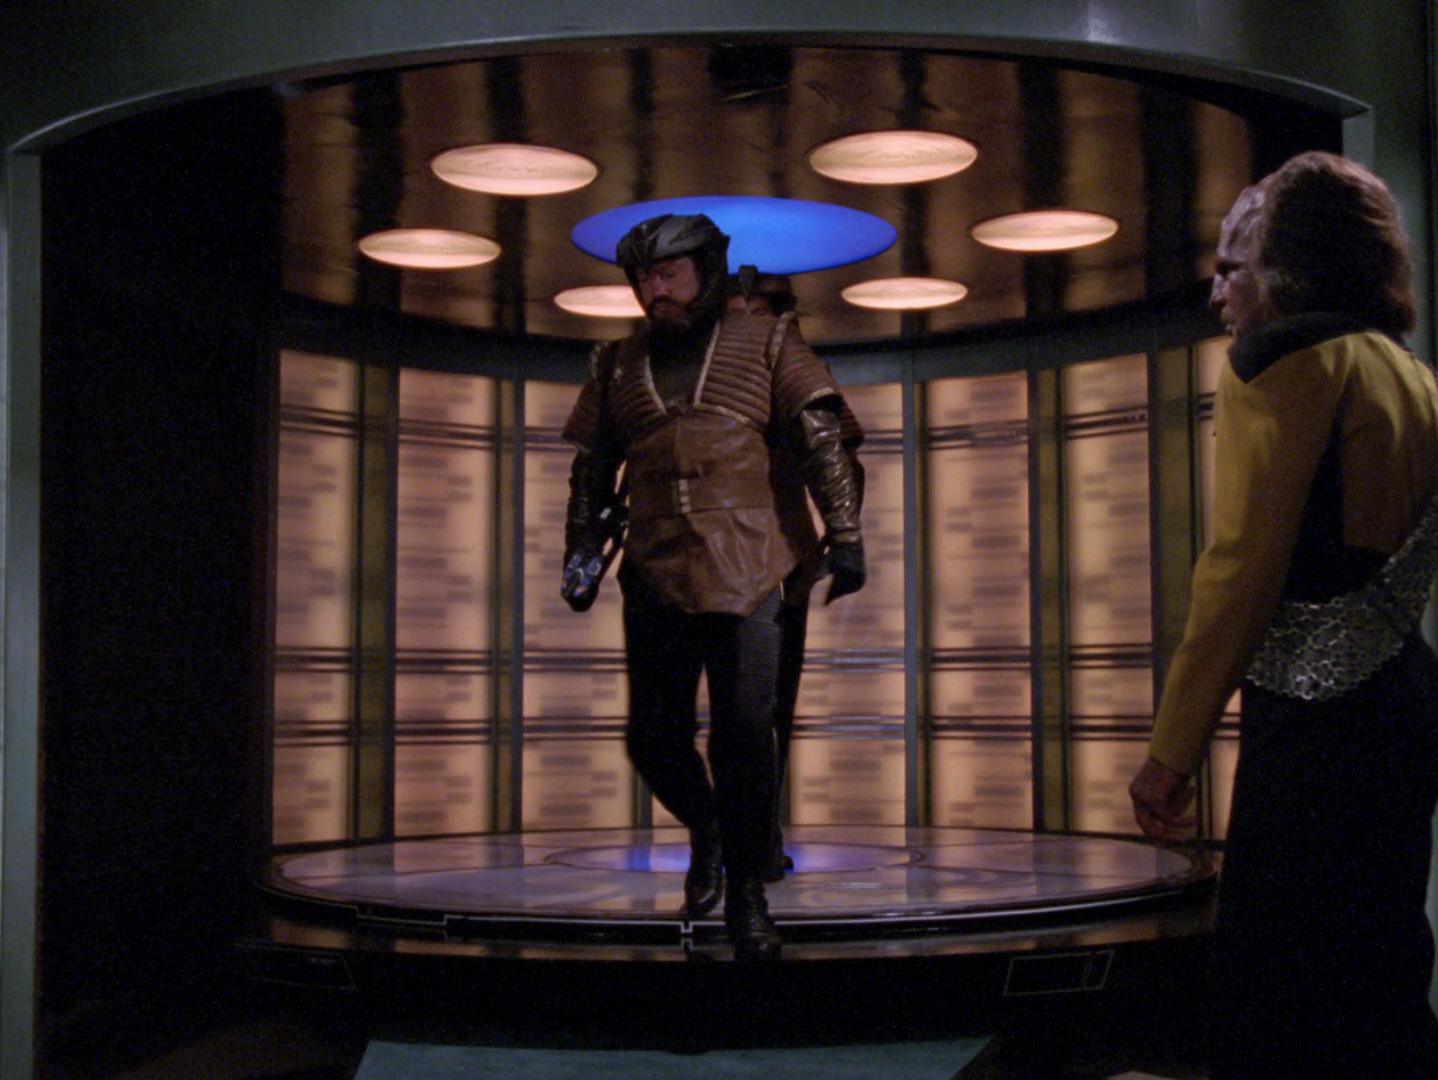 Star Trek: The Next Generation - Endars Sohn (Suddenly Human) Blu-ray Screencap © CBS/Paramount